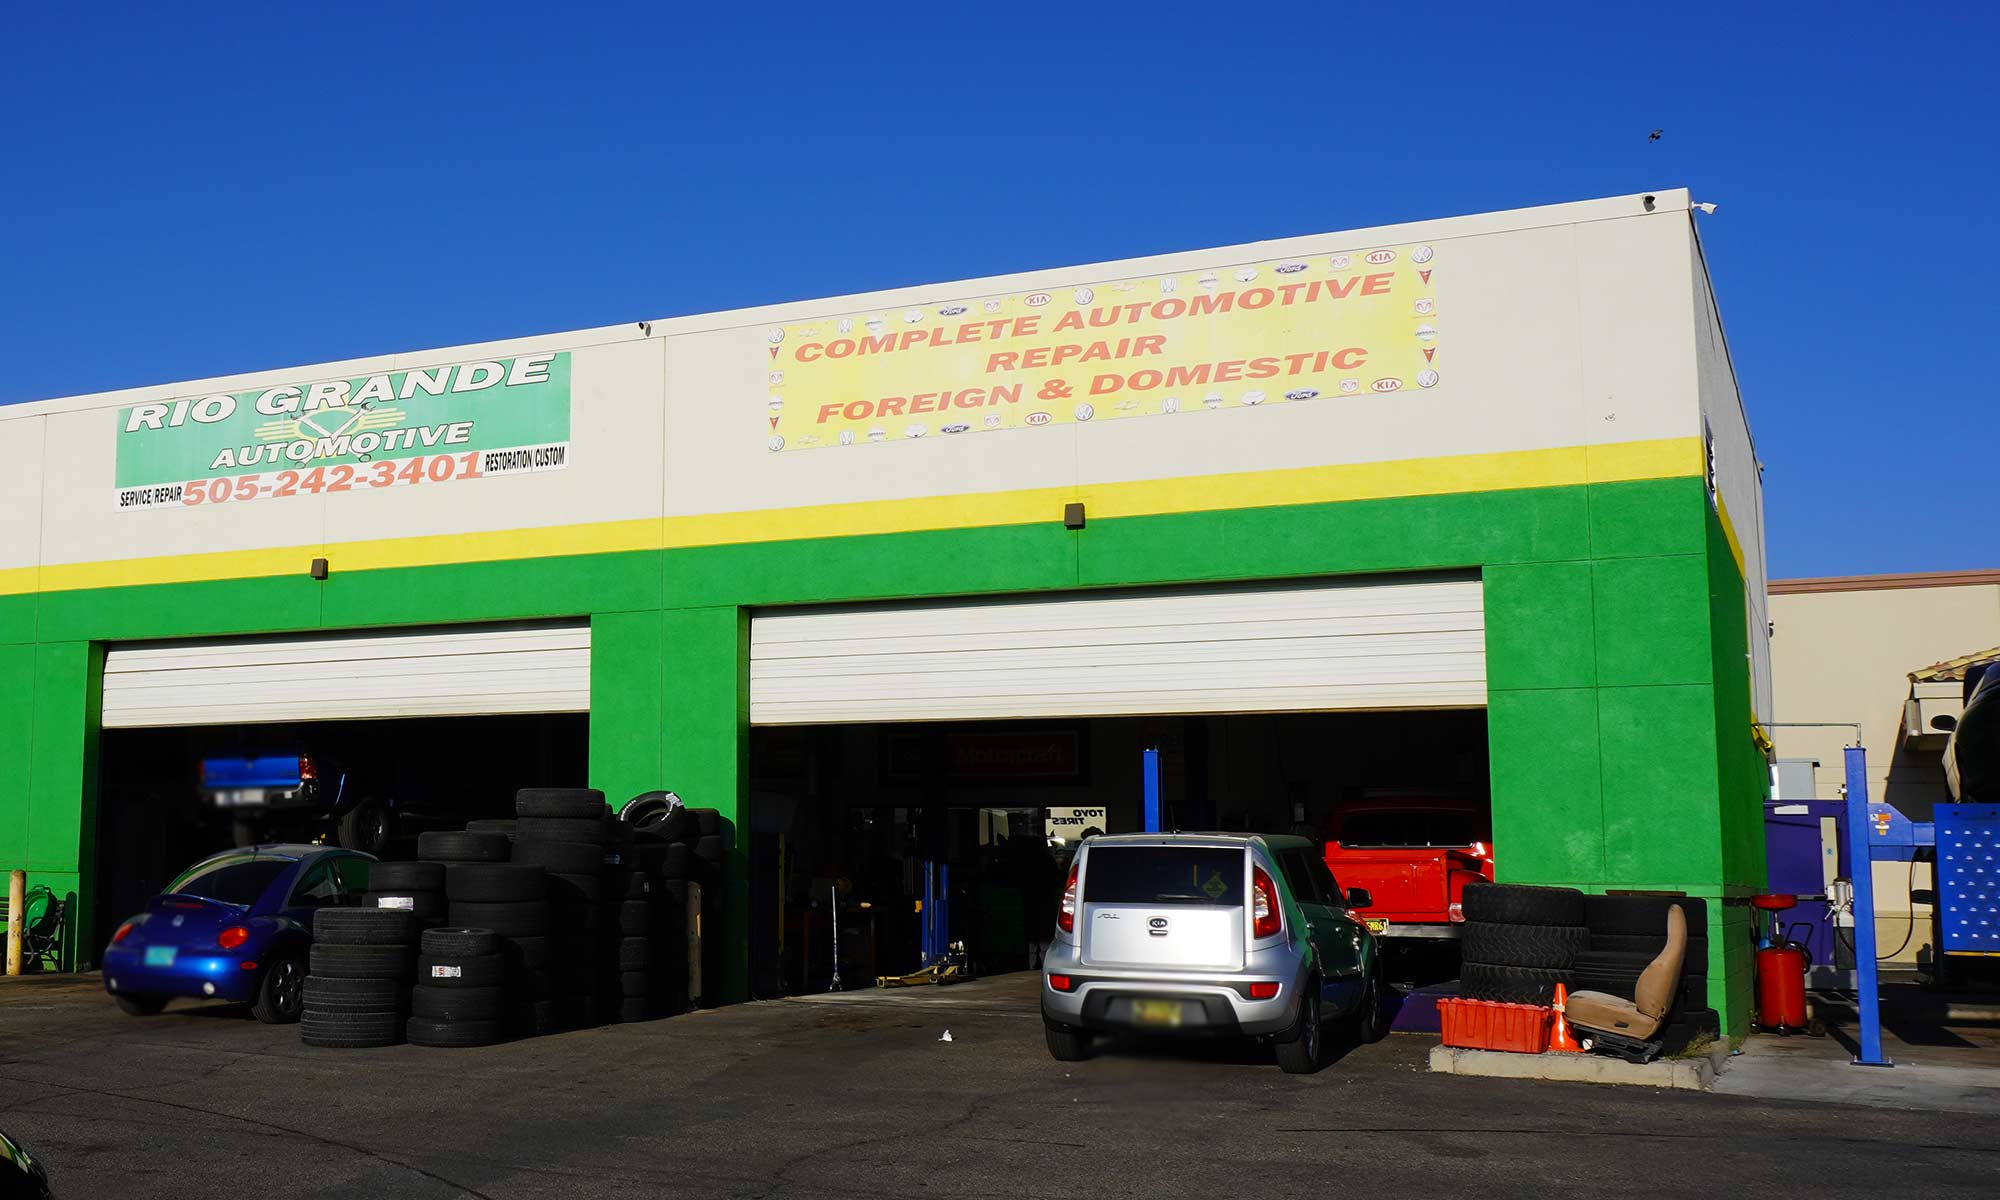 Rio Grande Automotive